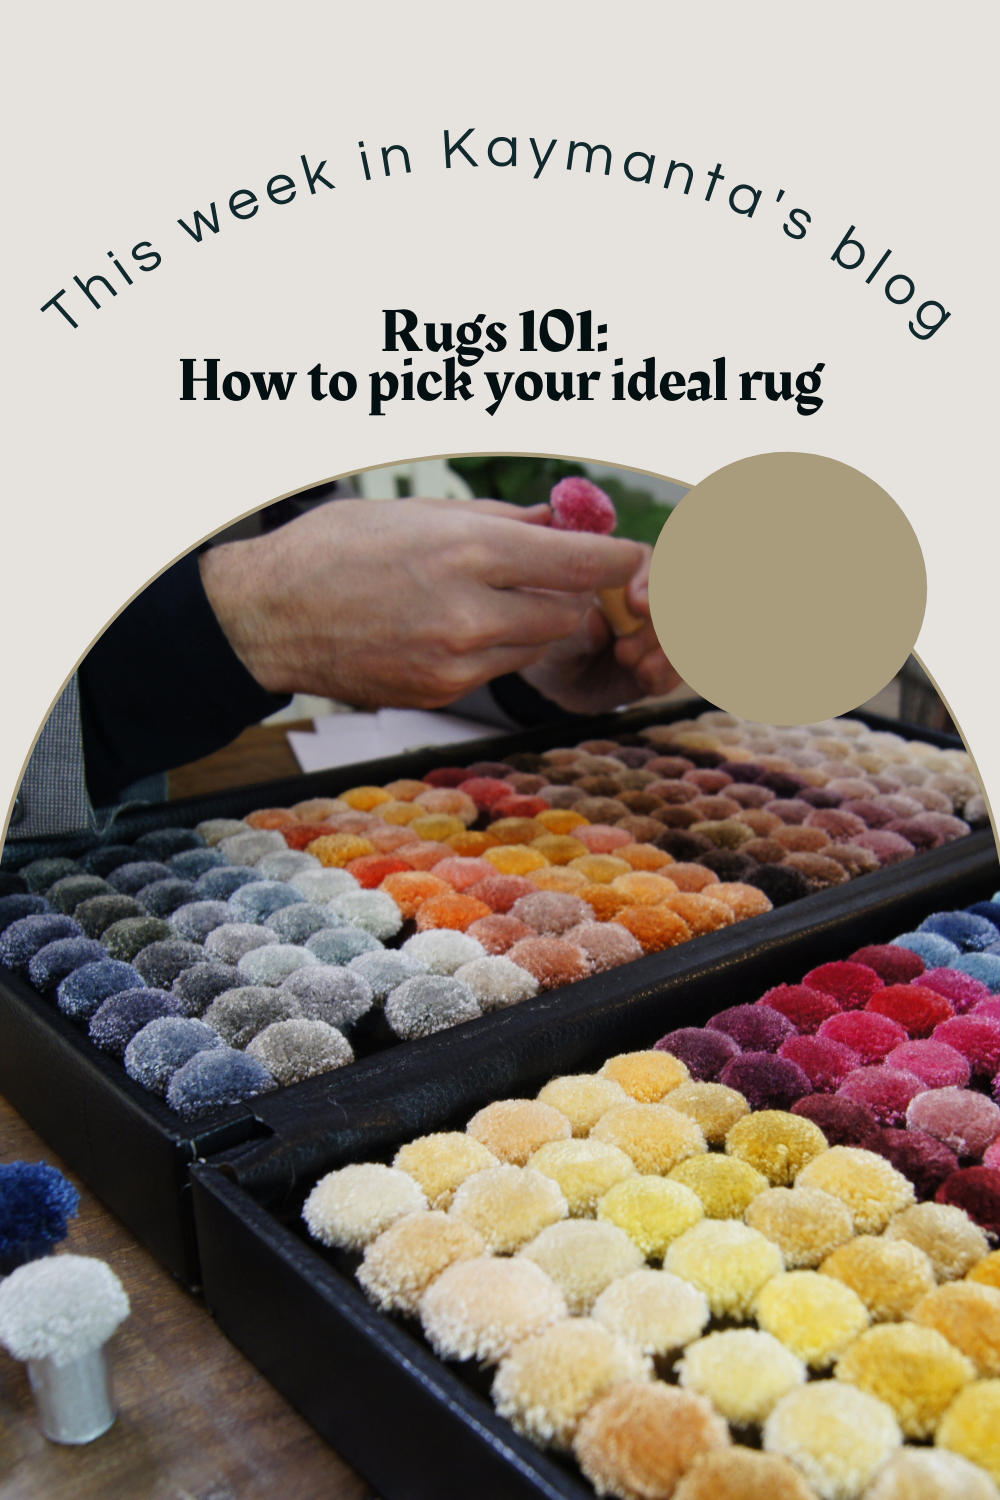 Rugs 101: How to pick your ideal rug